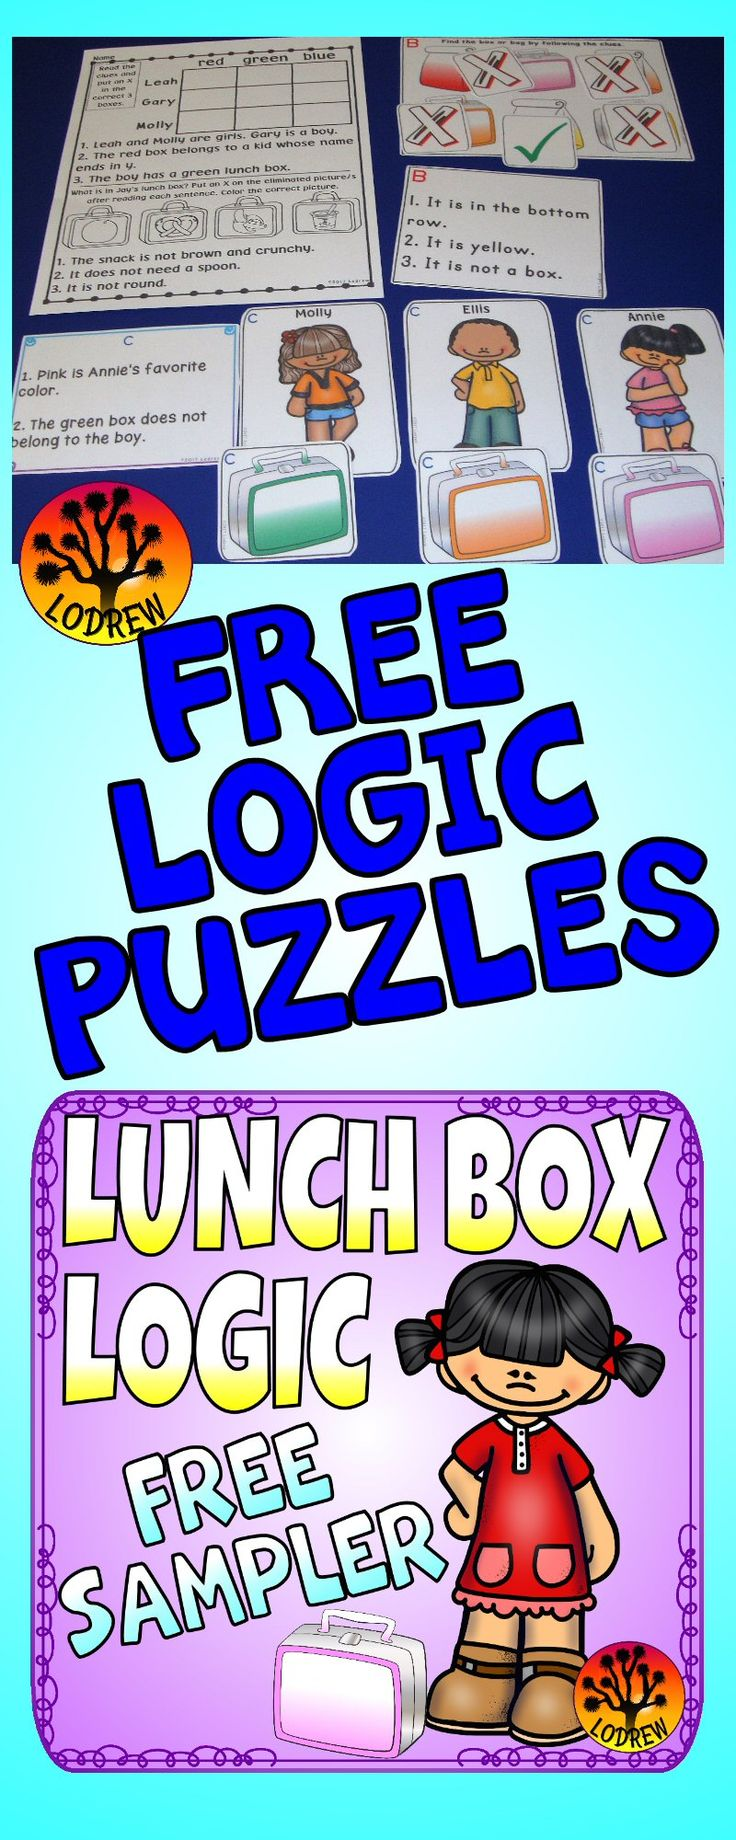 FREE logic puzzles in a lunch box theme. Activities include reading, critical thinking, using logic, colors, sight words, reading comprehension, drawing conclusions, comparing, task cards, lunchbox centers, food centers, lunch bags, positions, hands on problem solving, ordinal positions, true or false, literacy, math, no prep, and more. For kindergarten, first grade, preschool, SPED, child care, homeschool, or any early childhood setting.